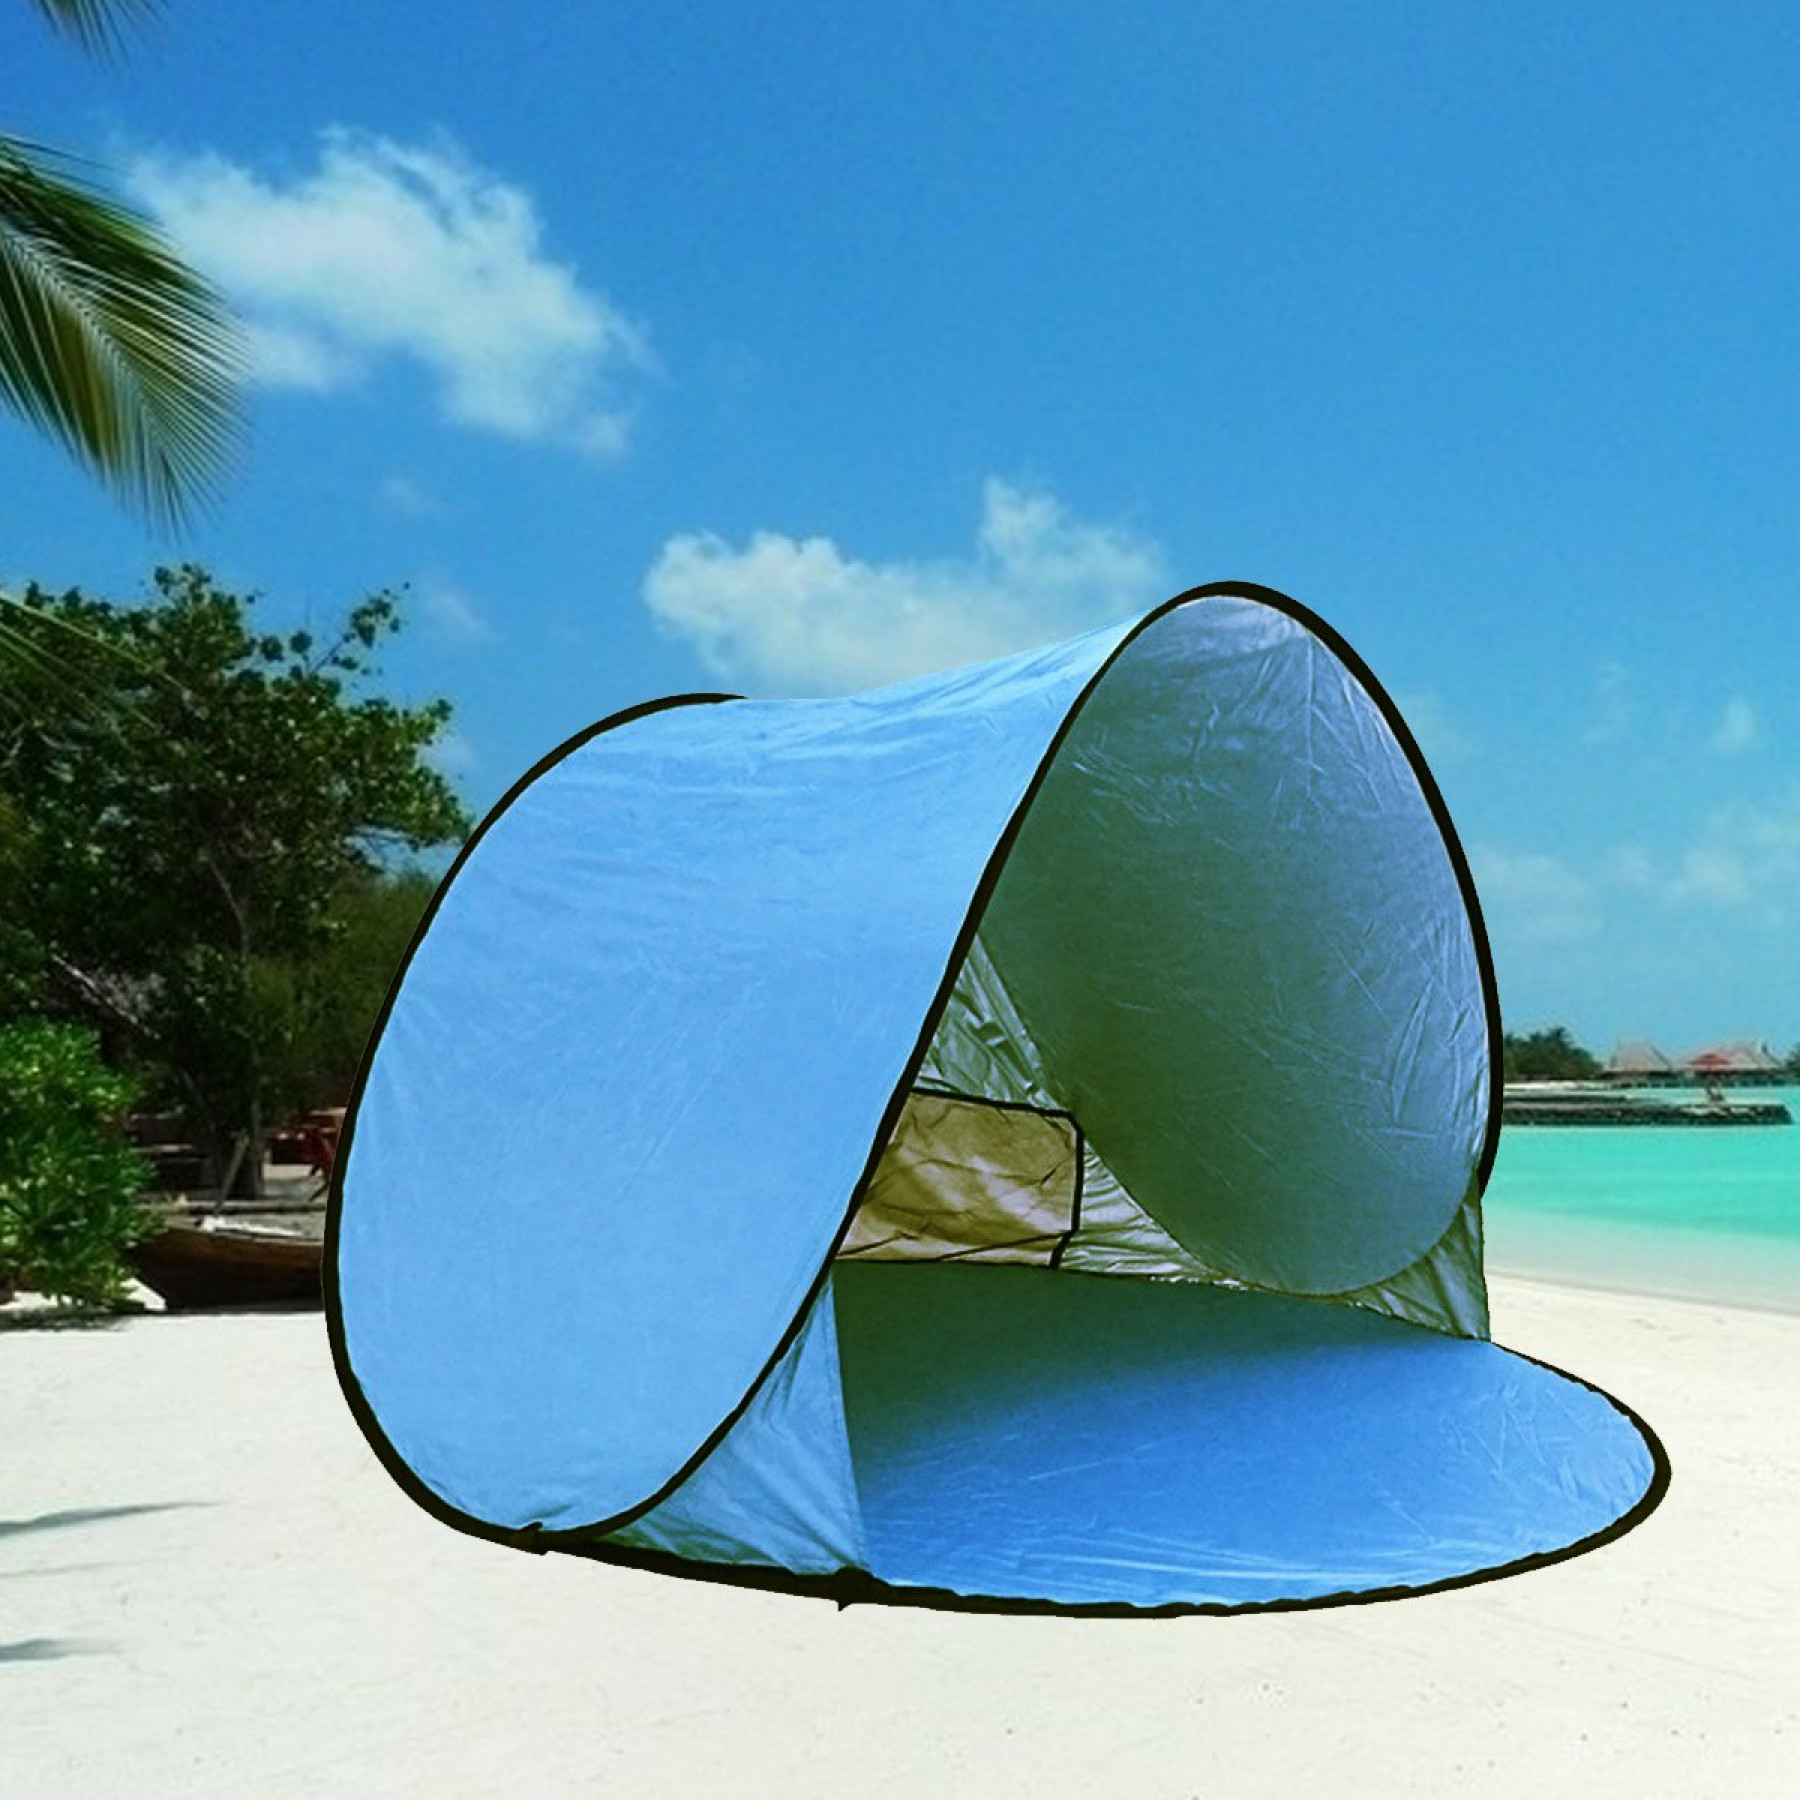 Pop Up Cabana : Automatic pop up beach tent portable lightweight sun